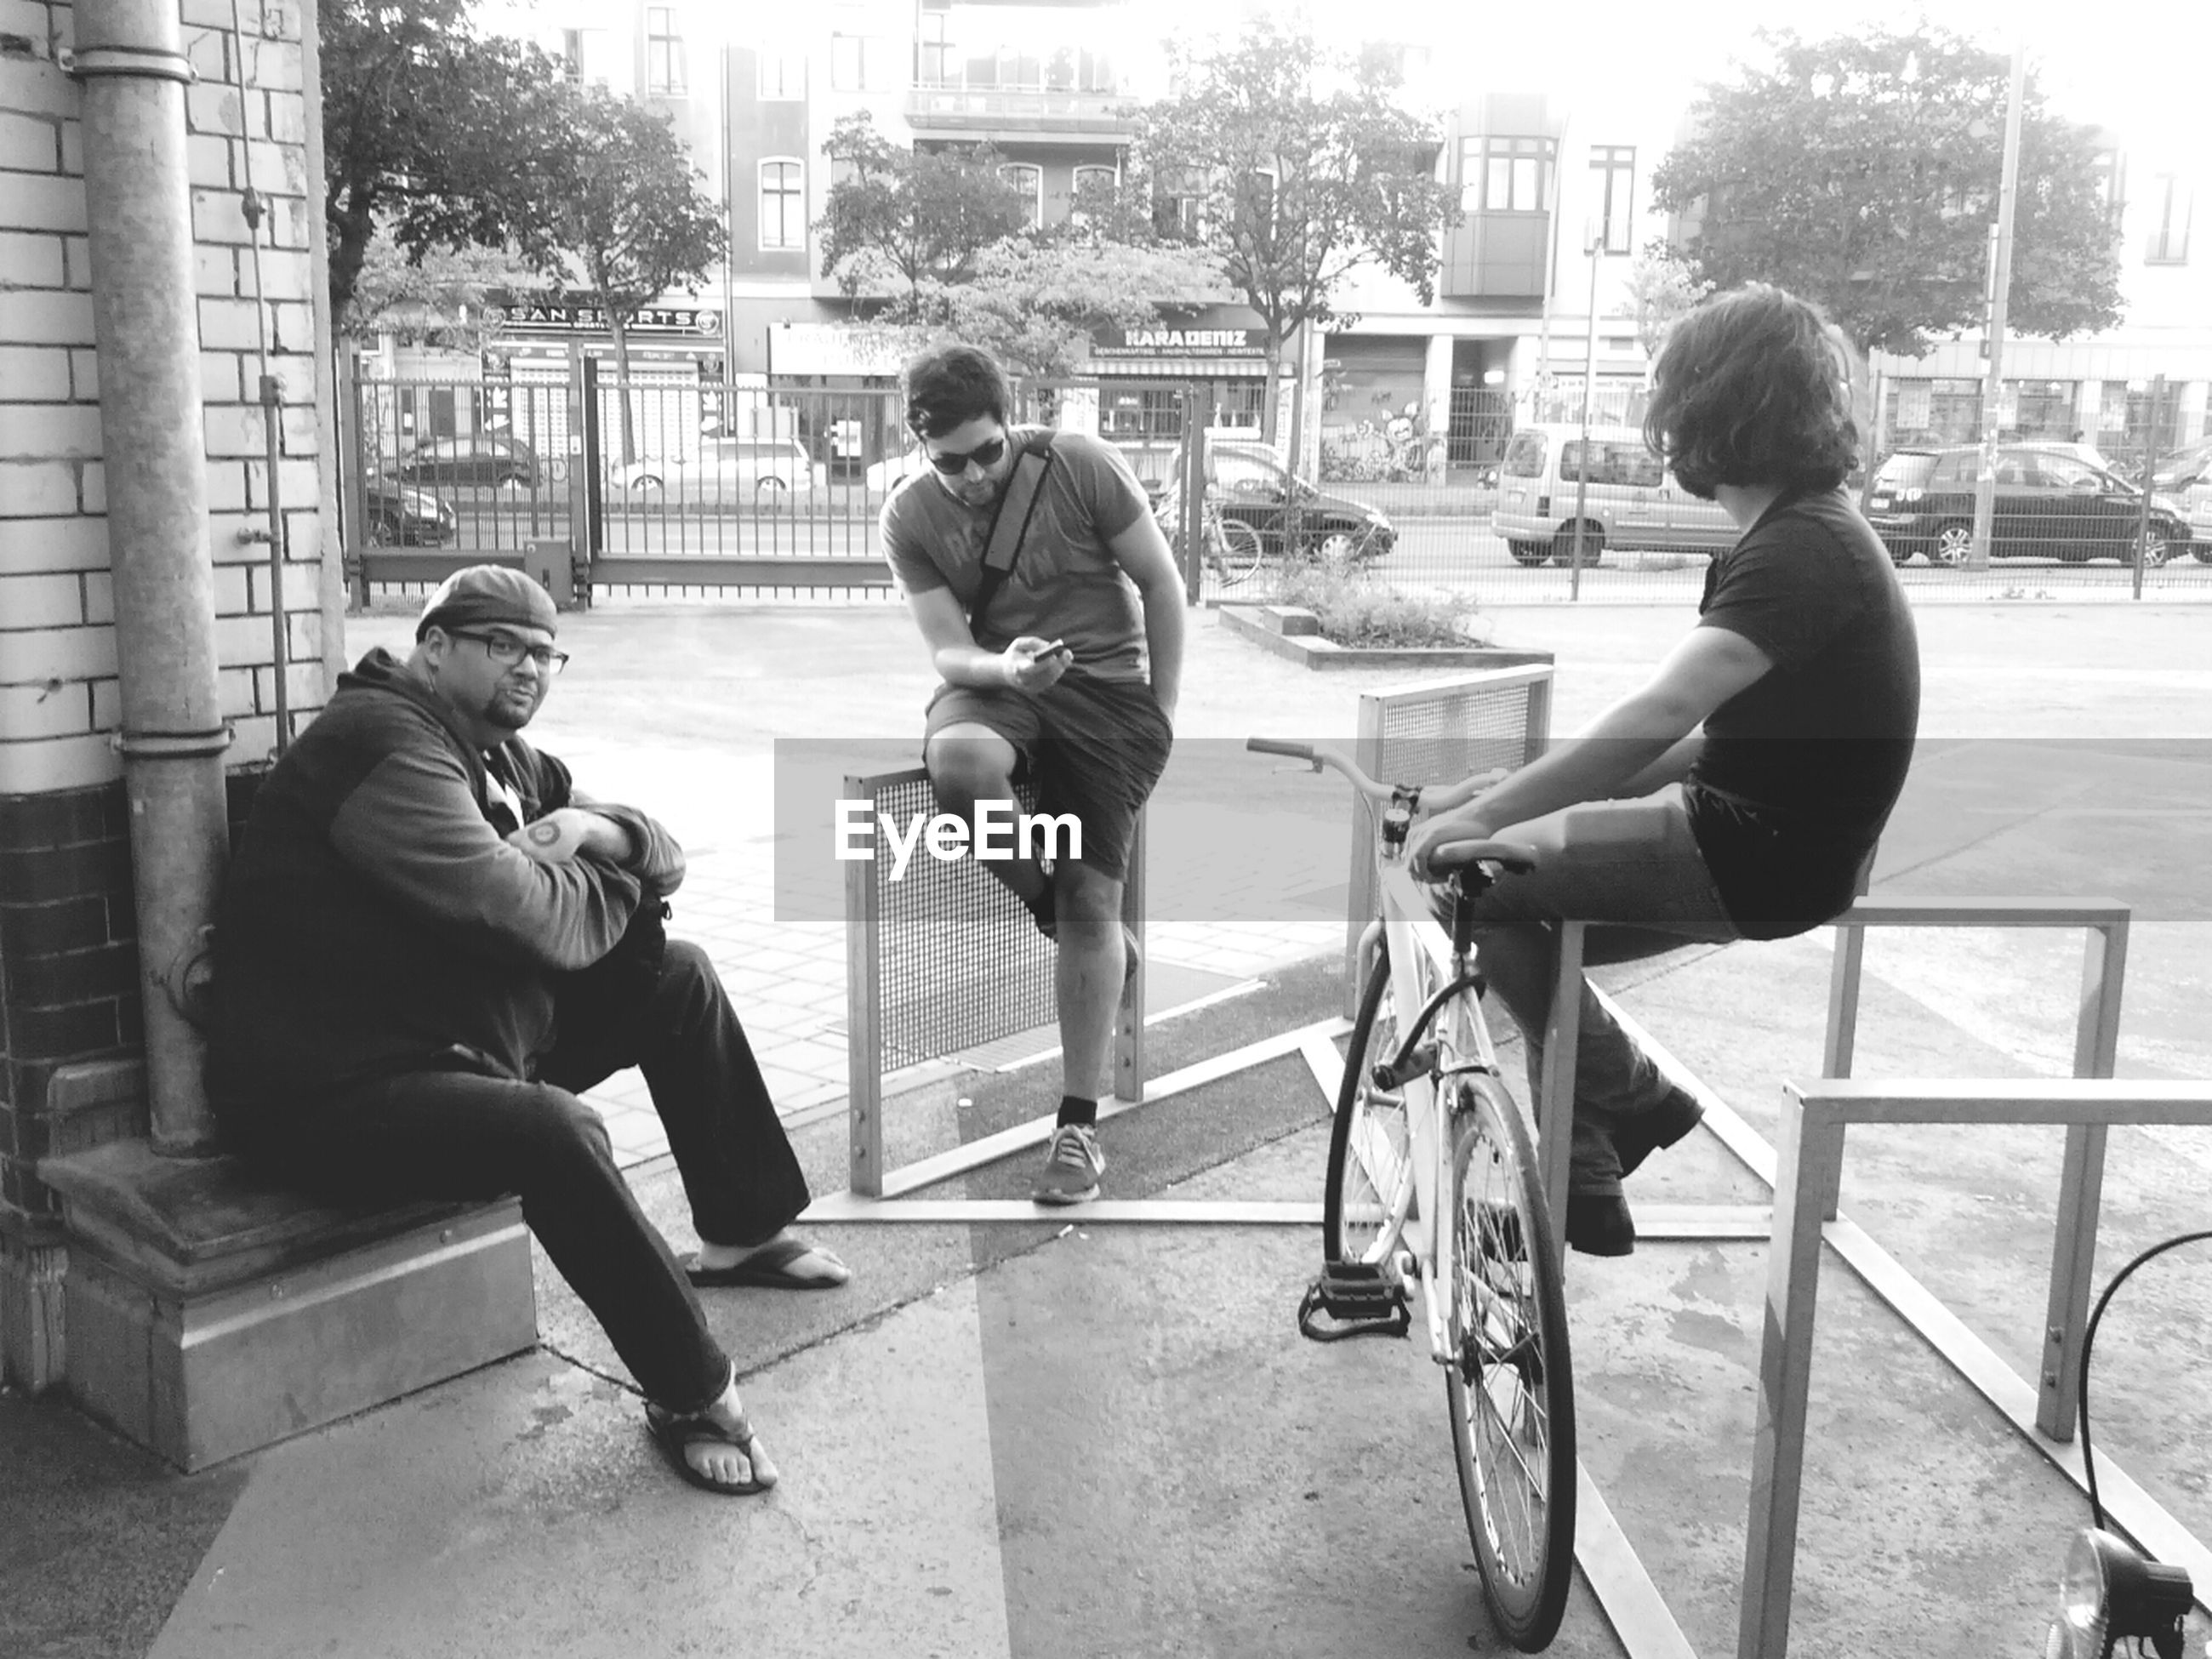 Three young men sitting outdoors